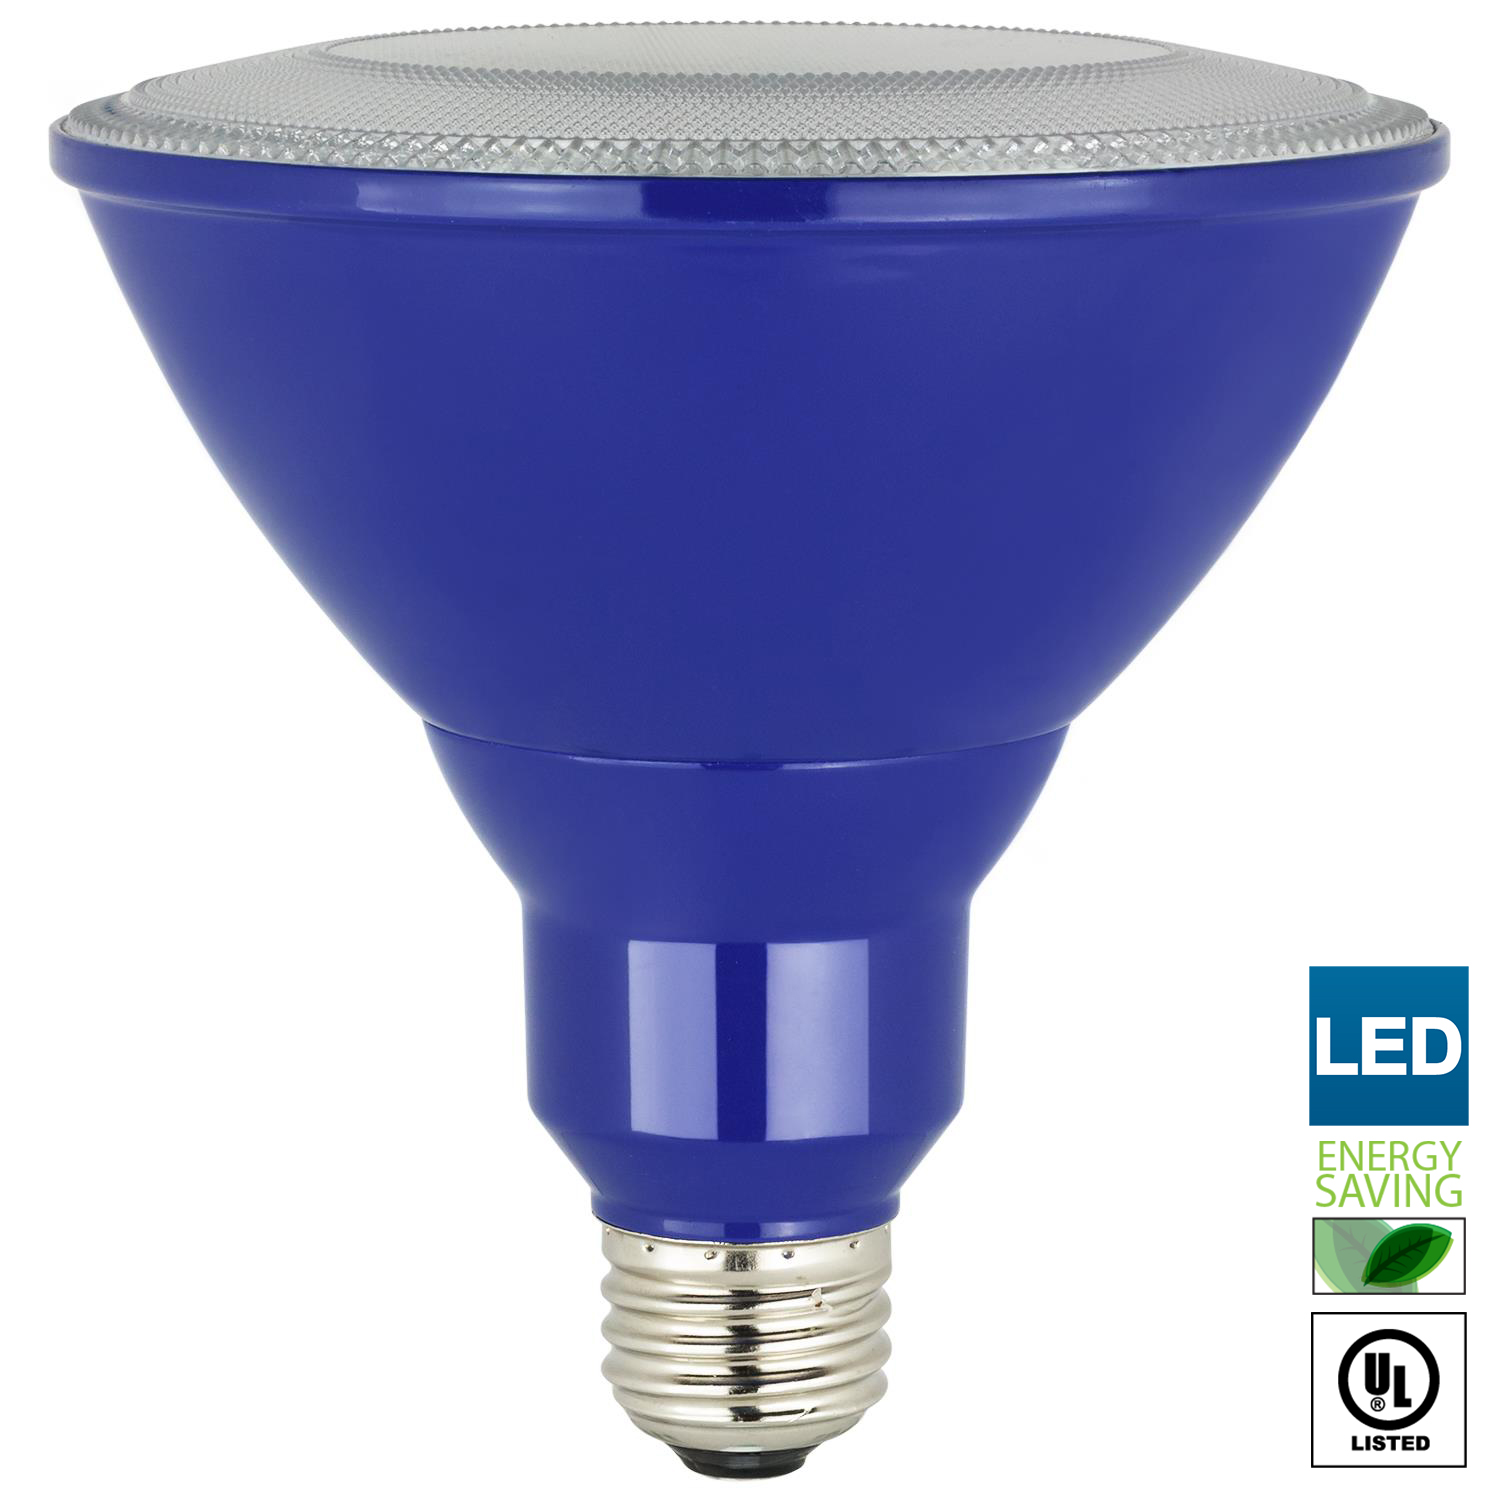 Sunlite LED PAR38 Blue Floodlight Bulb, 8W (25W Equivalent), Medium (E26) Base, Indoor, Outdoor, Wet Location, 25,000 Hour Lifespan, UL Listed